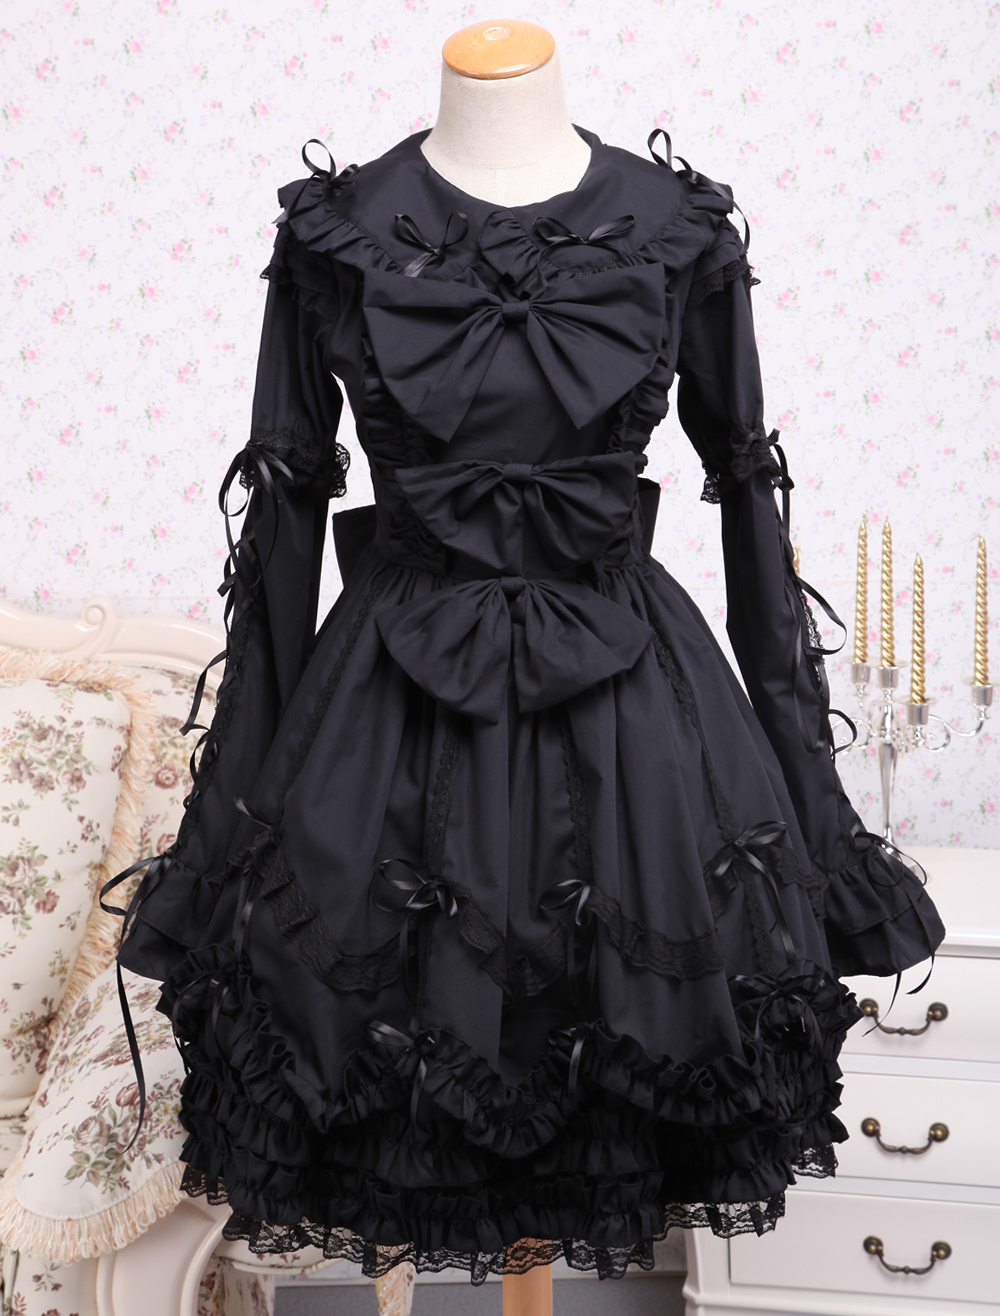 Buy Elegant Gothic Black Cotton Lolita OP Dress Long Sleeves Lace Trim Bows Ruffles for $90.99 in Milanoo store